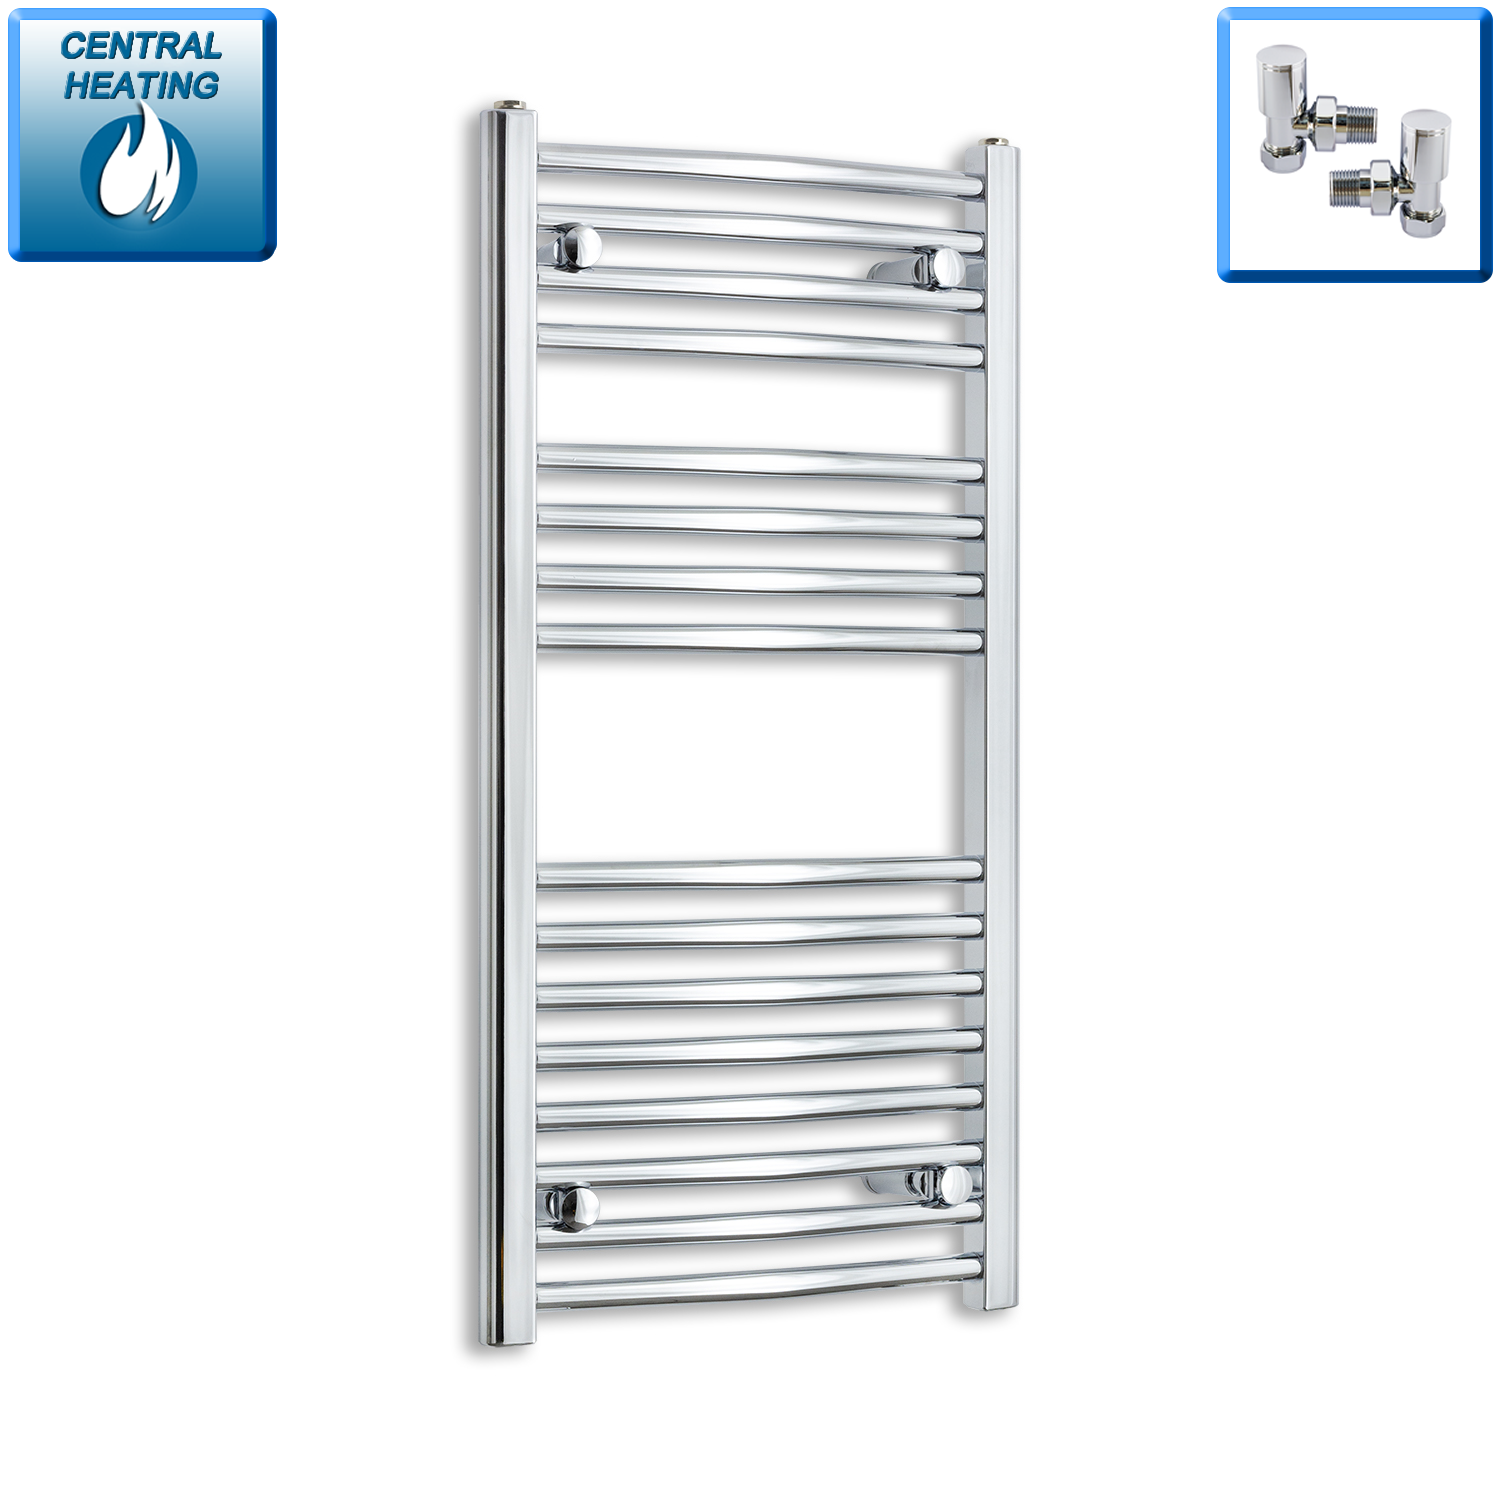 450mm Wide 900mm High Chrome Towel Rail Radiator With Angled Valve